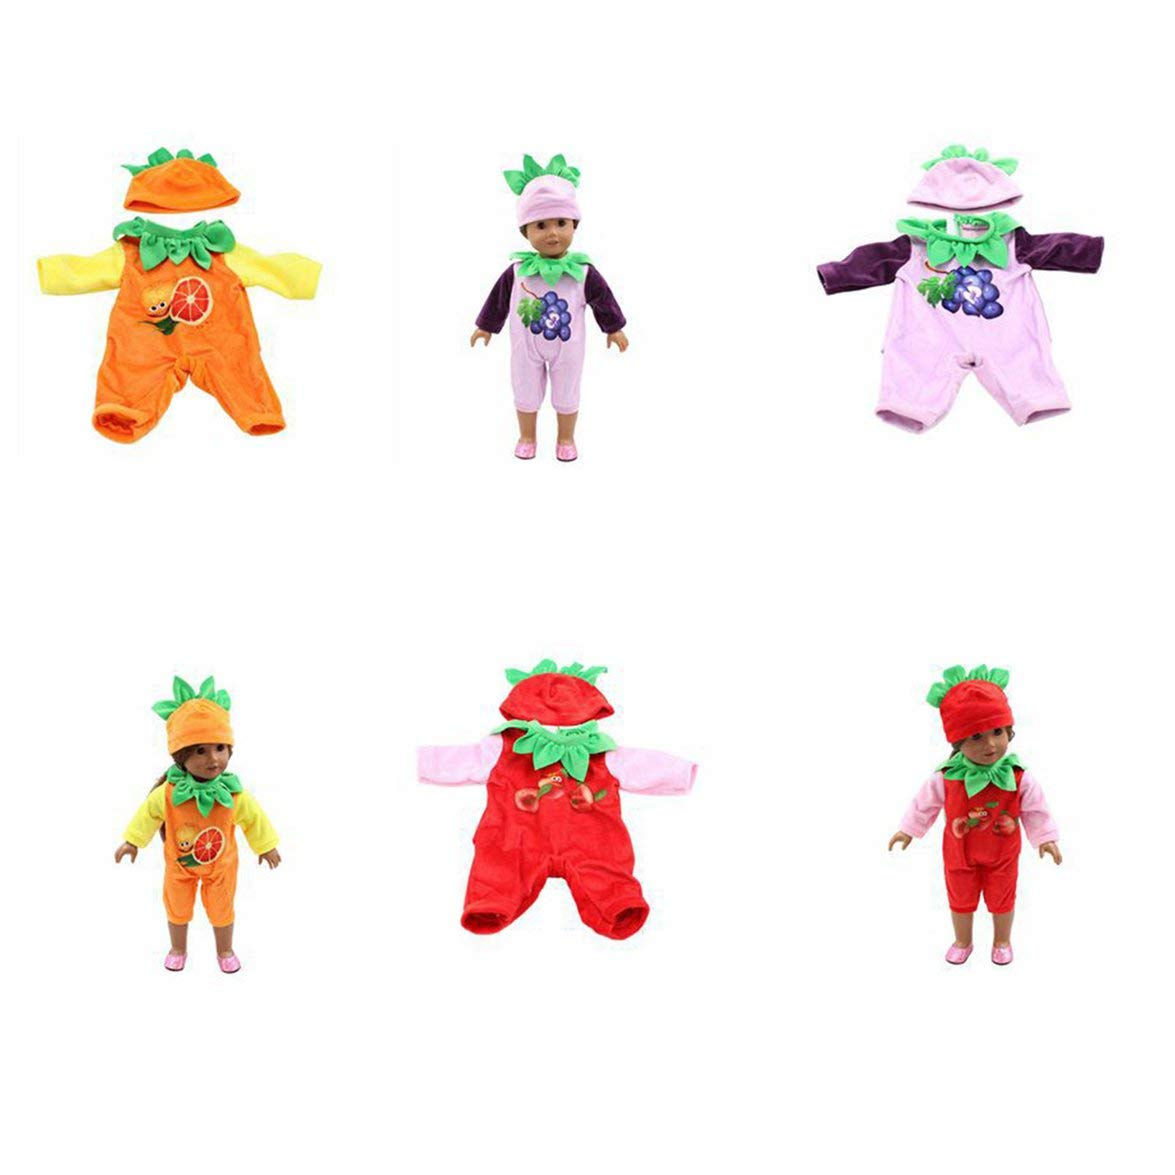 Kongqiabona 18 Inch Doll Clothing American Girl Toy Accessories Plush Hat Body Suit Set